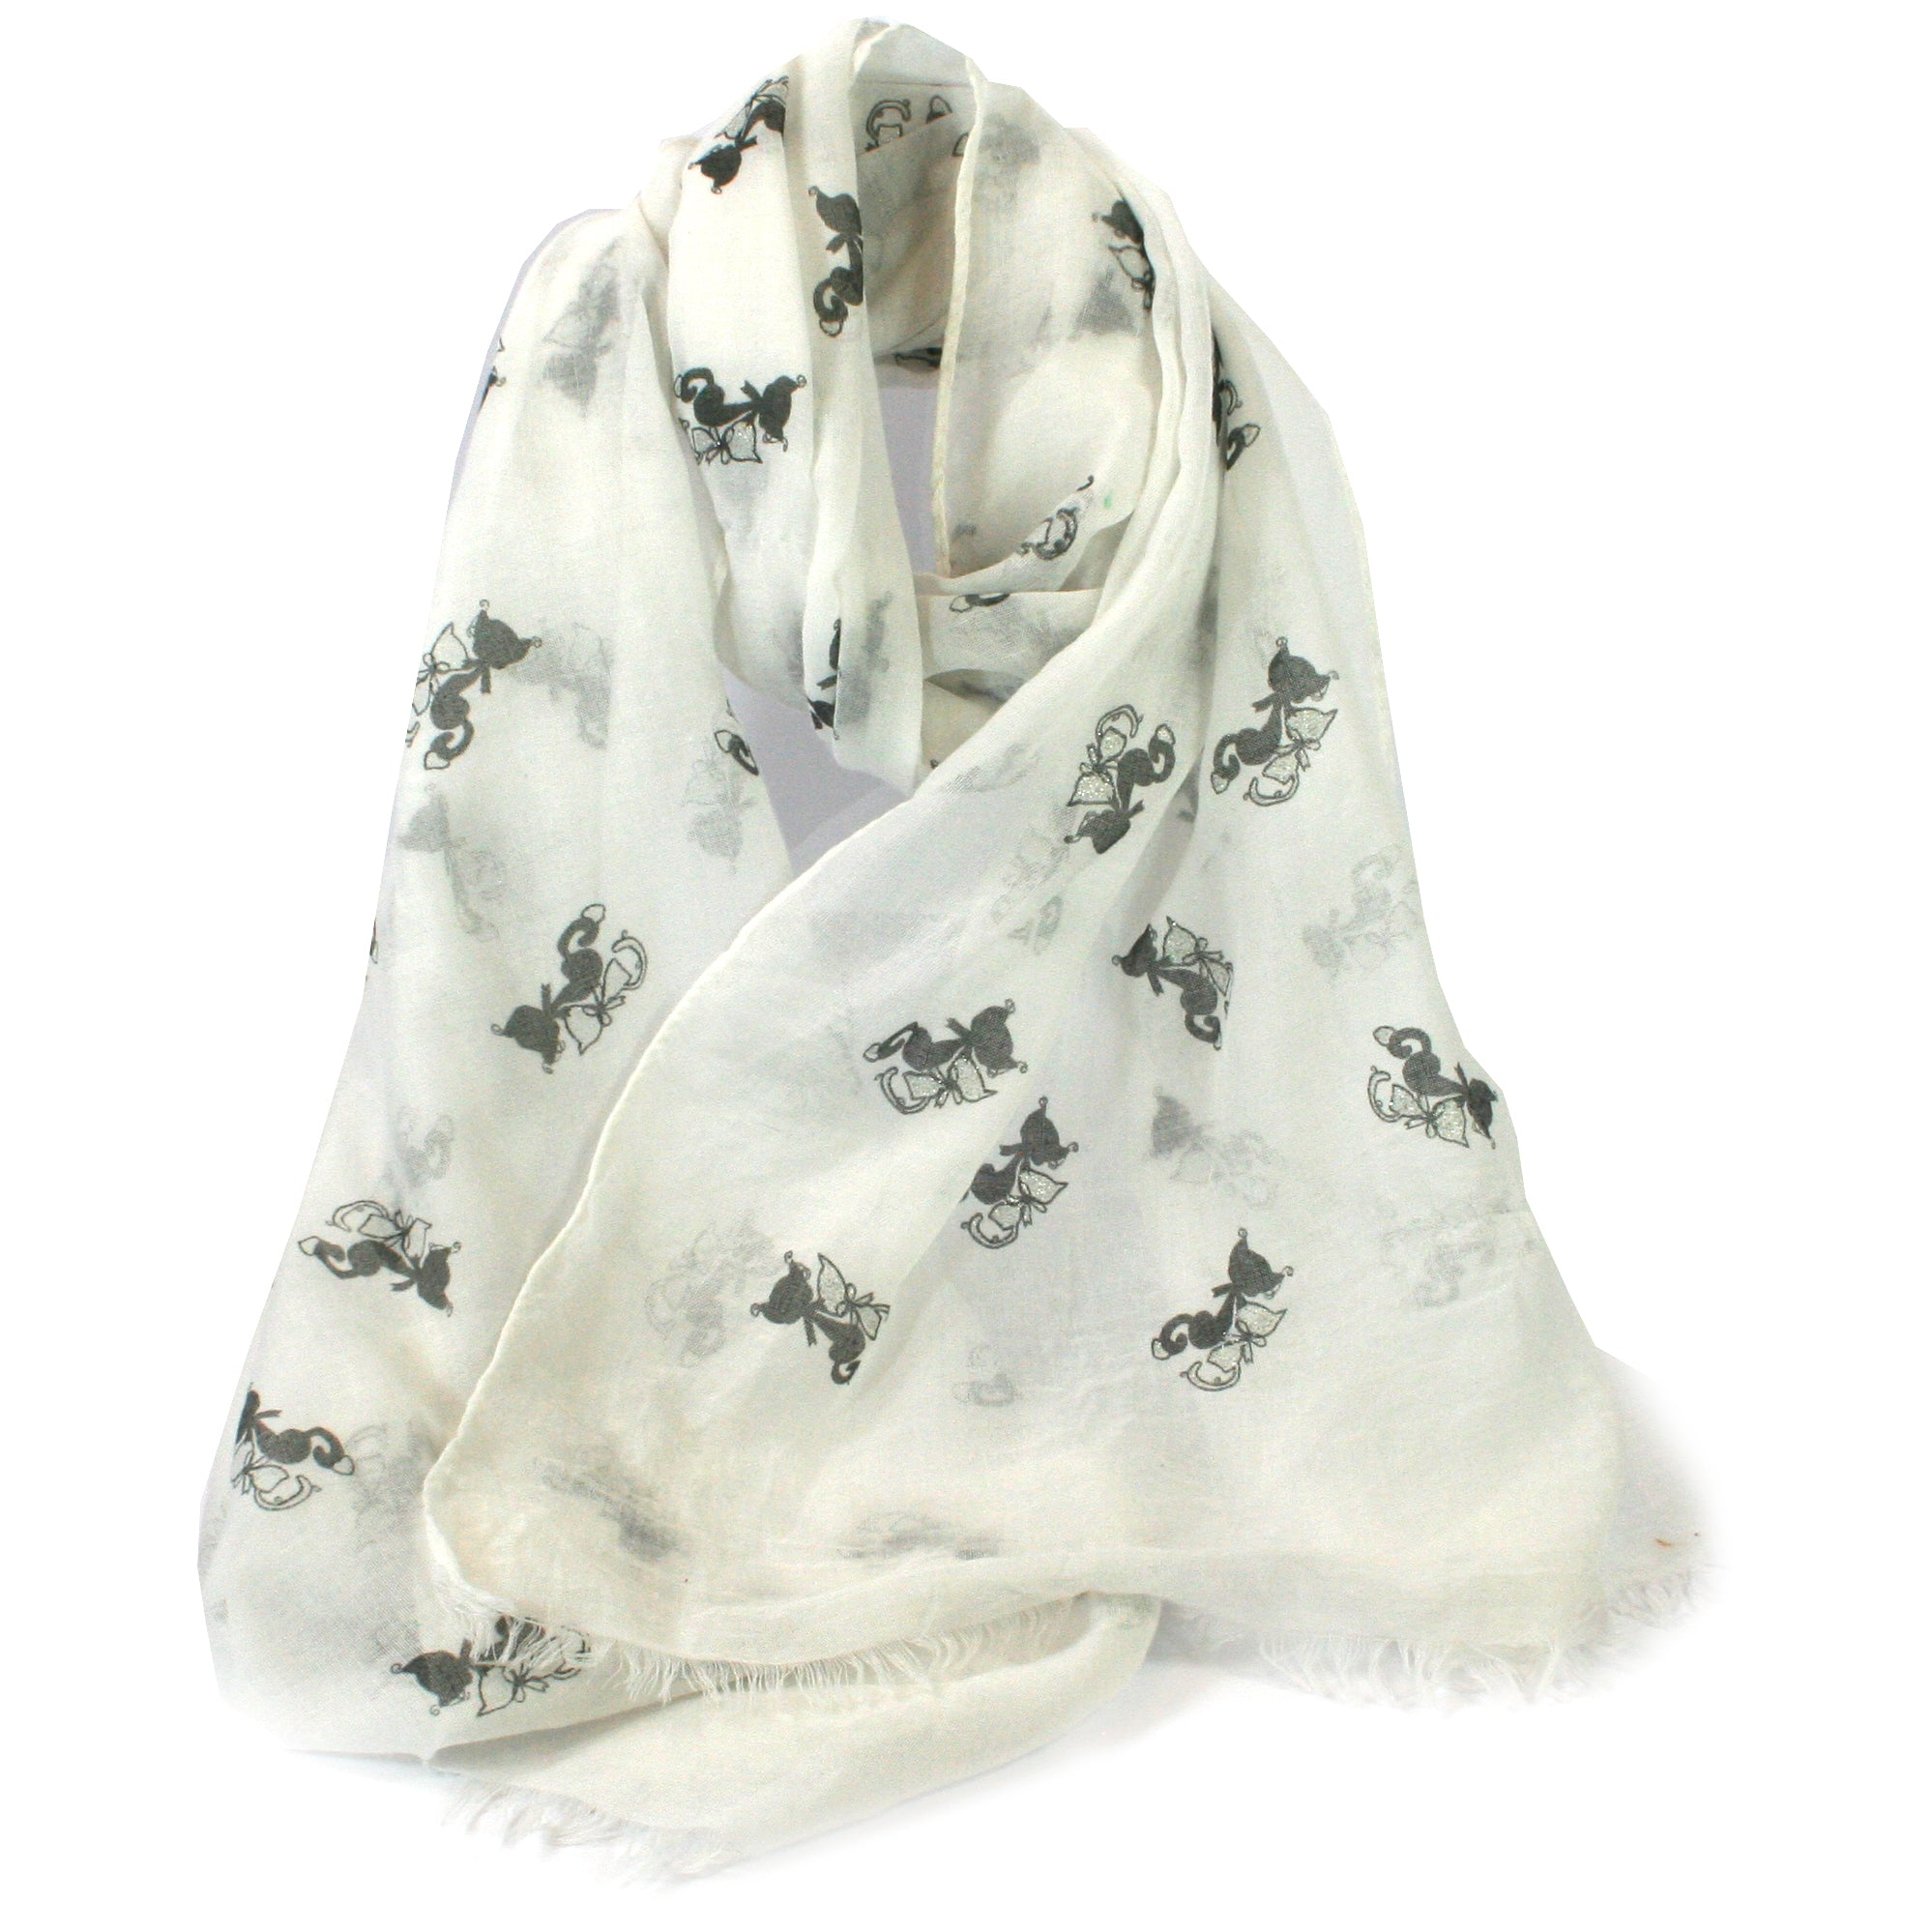 Cat Metallic Silver Foil Scarf Wrap Pashima Shawl Cotton Cat Kitten Lovers Gift